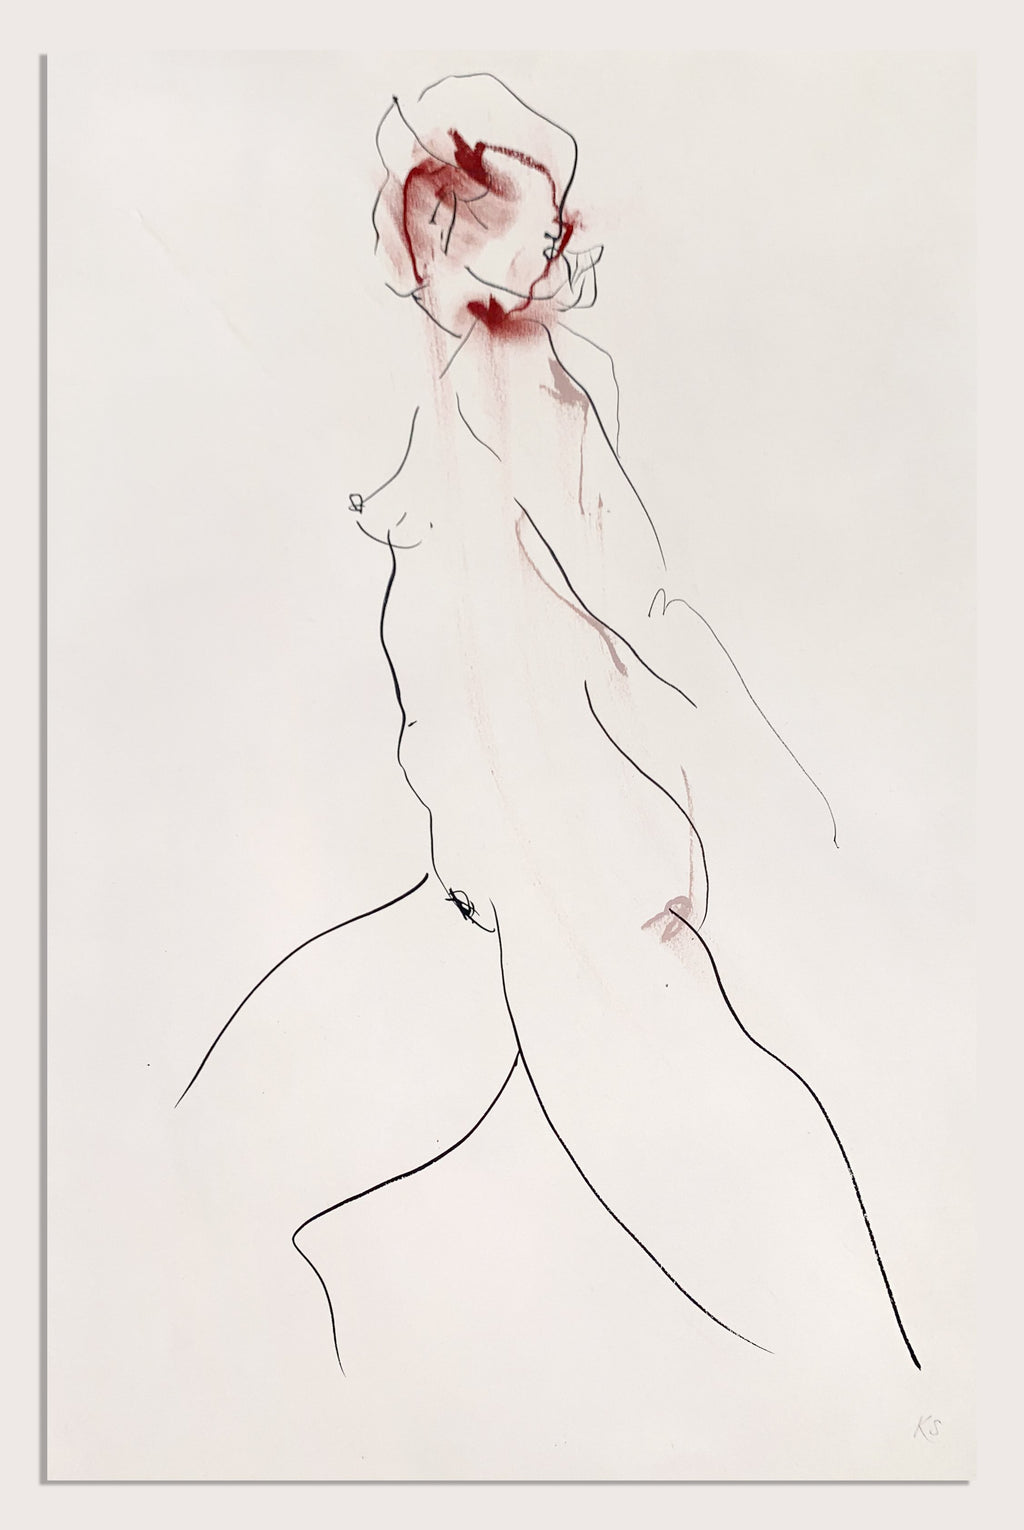 An expressive life drawing by contemporary, woman artist Katherine Sheers